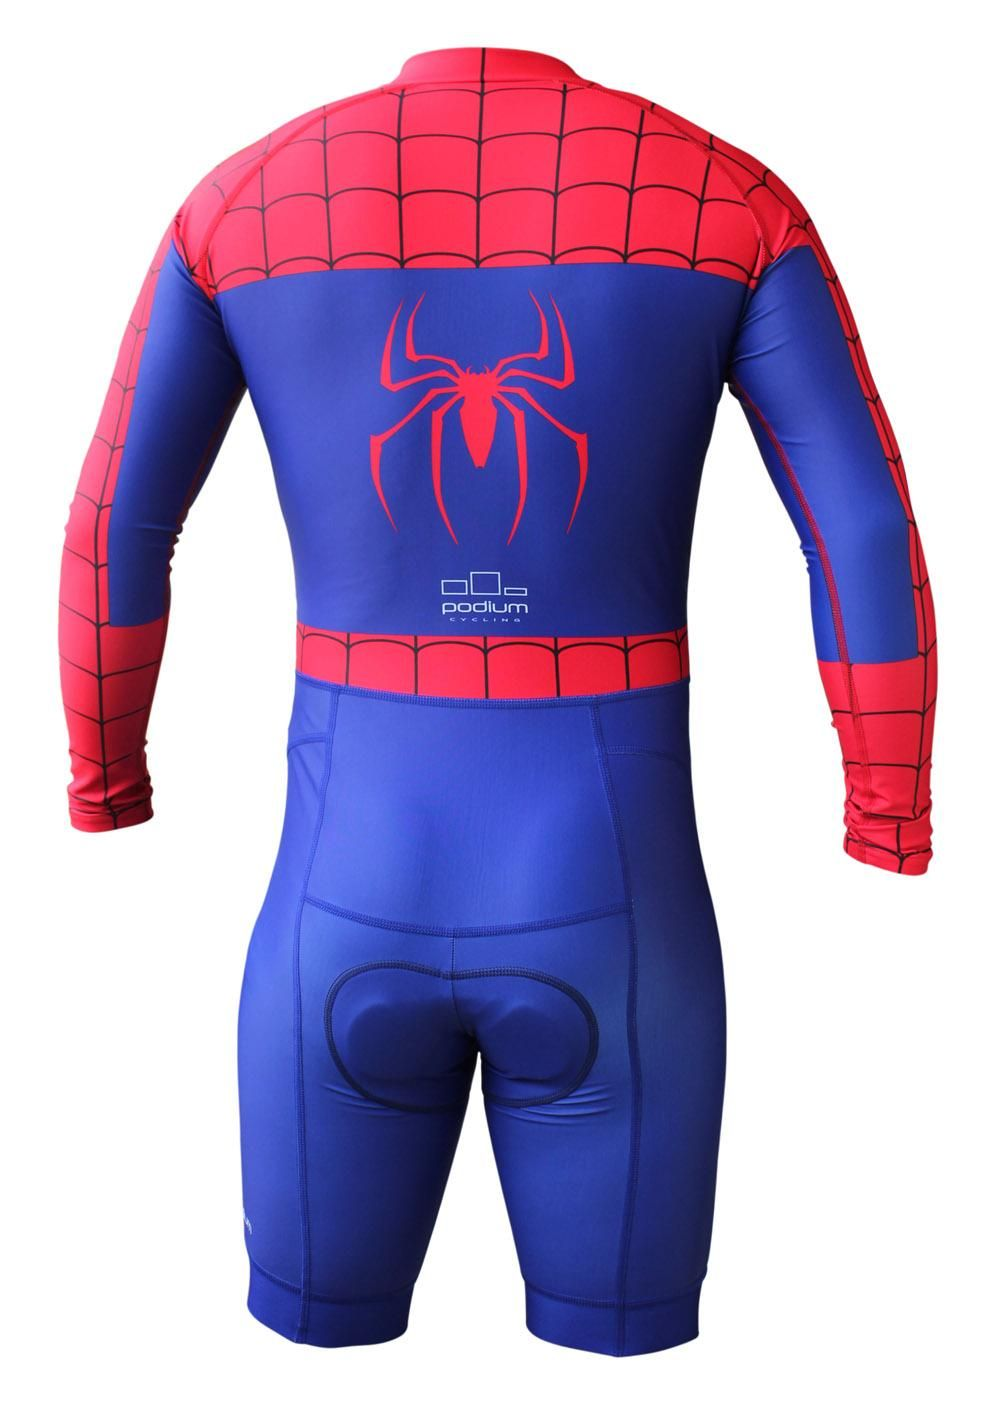 Podium Cycling Spiderman Inspired Cycling Skinsuit. Find this Pin and more  on Novel Cycling Gear ... 2e336d82a